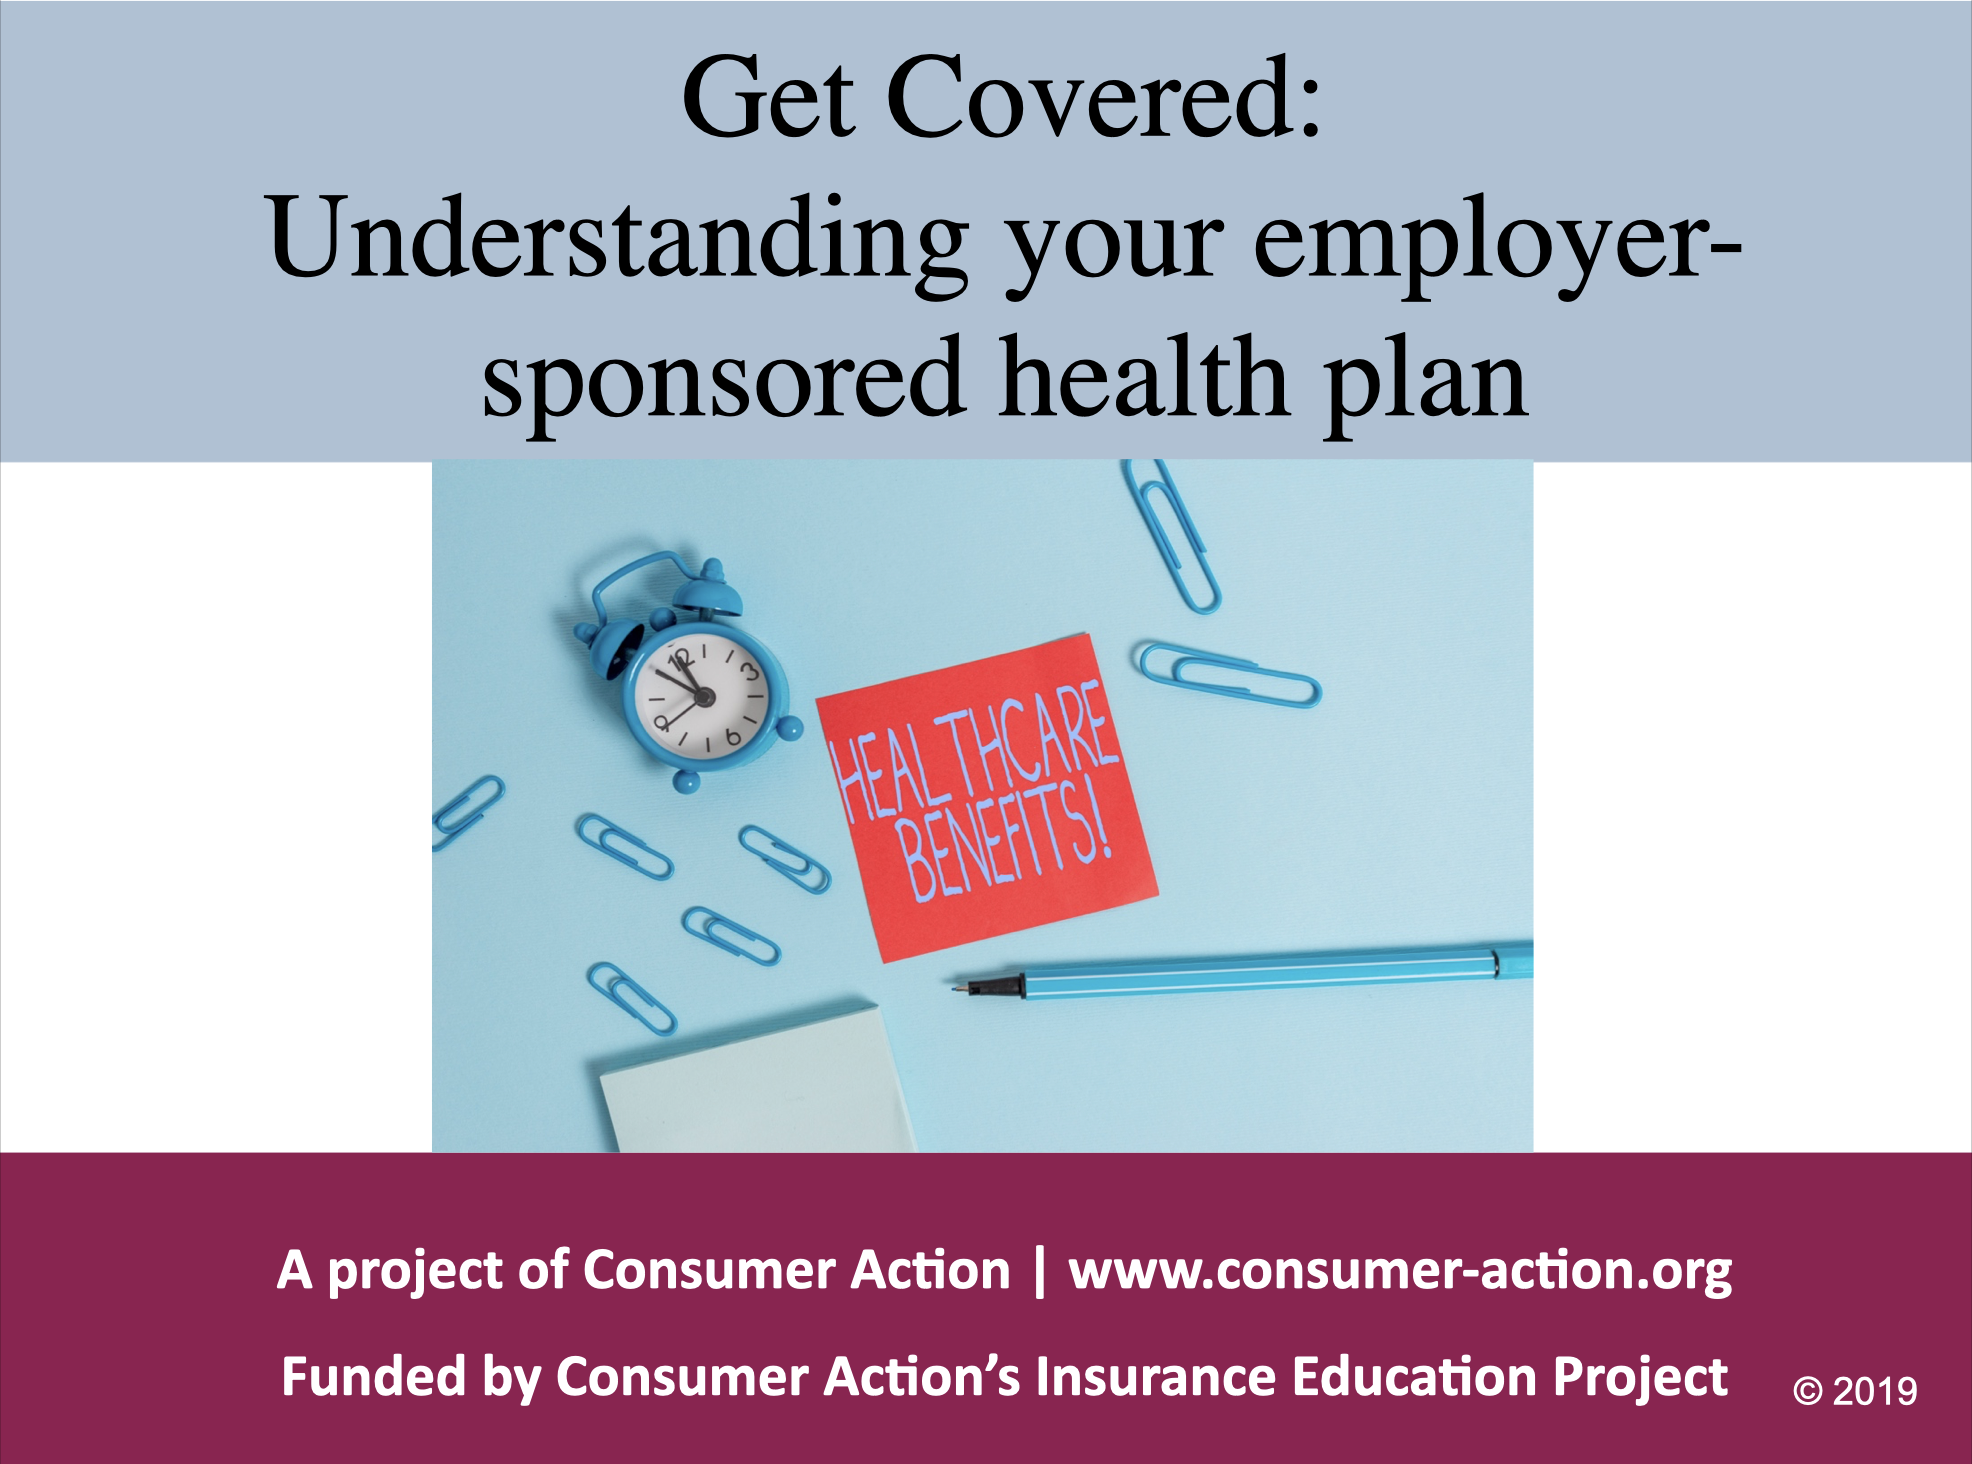 Employer-sponsored health plans - PowerPoint training slides